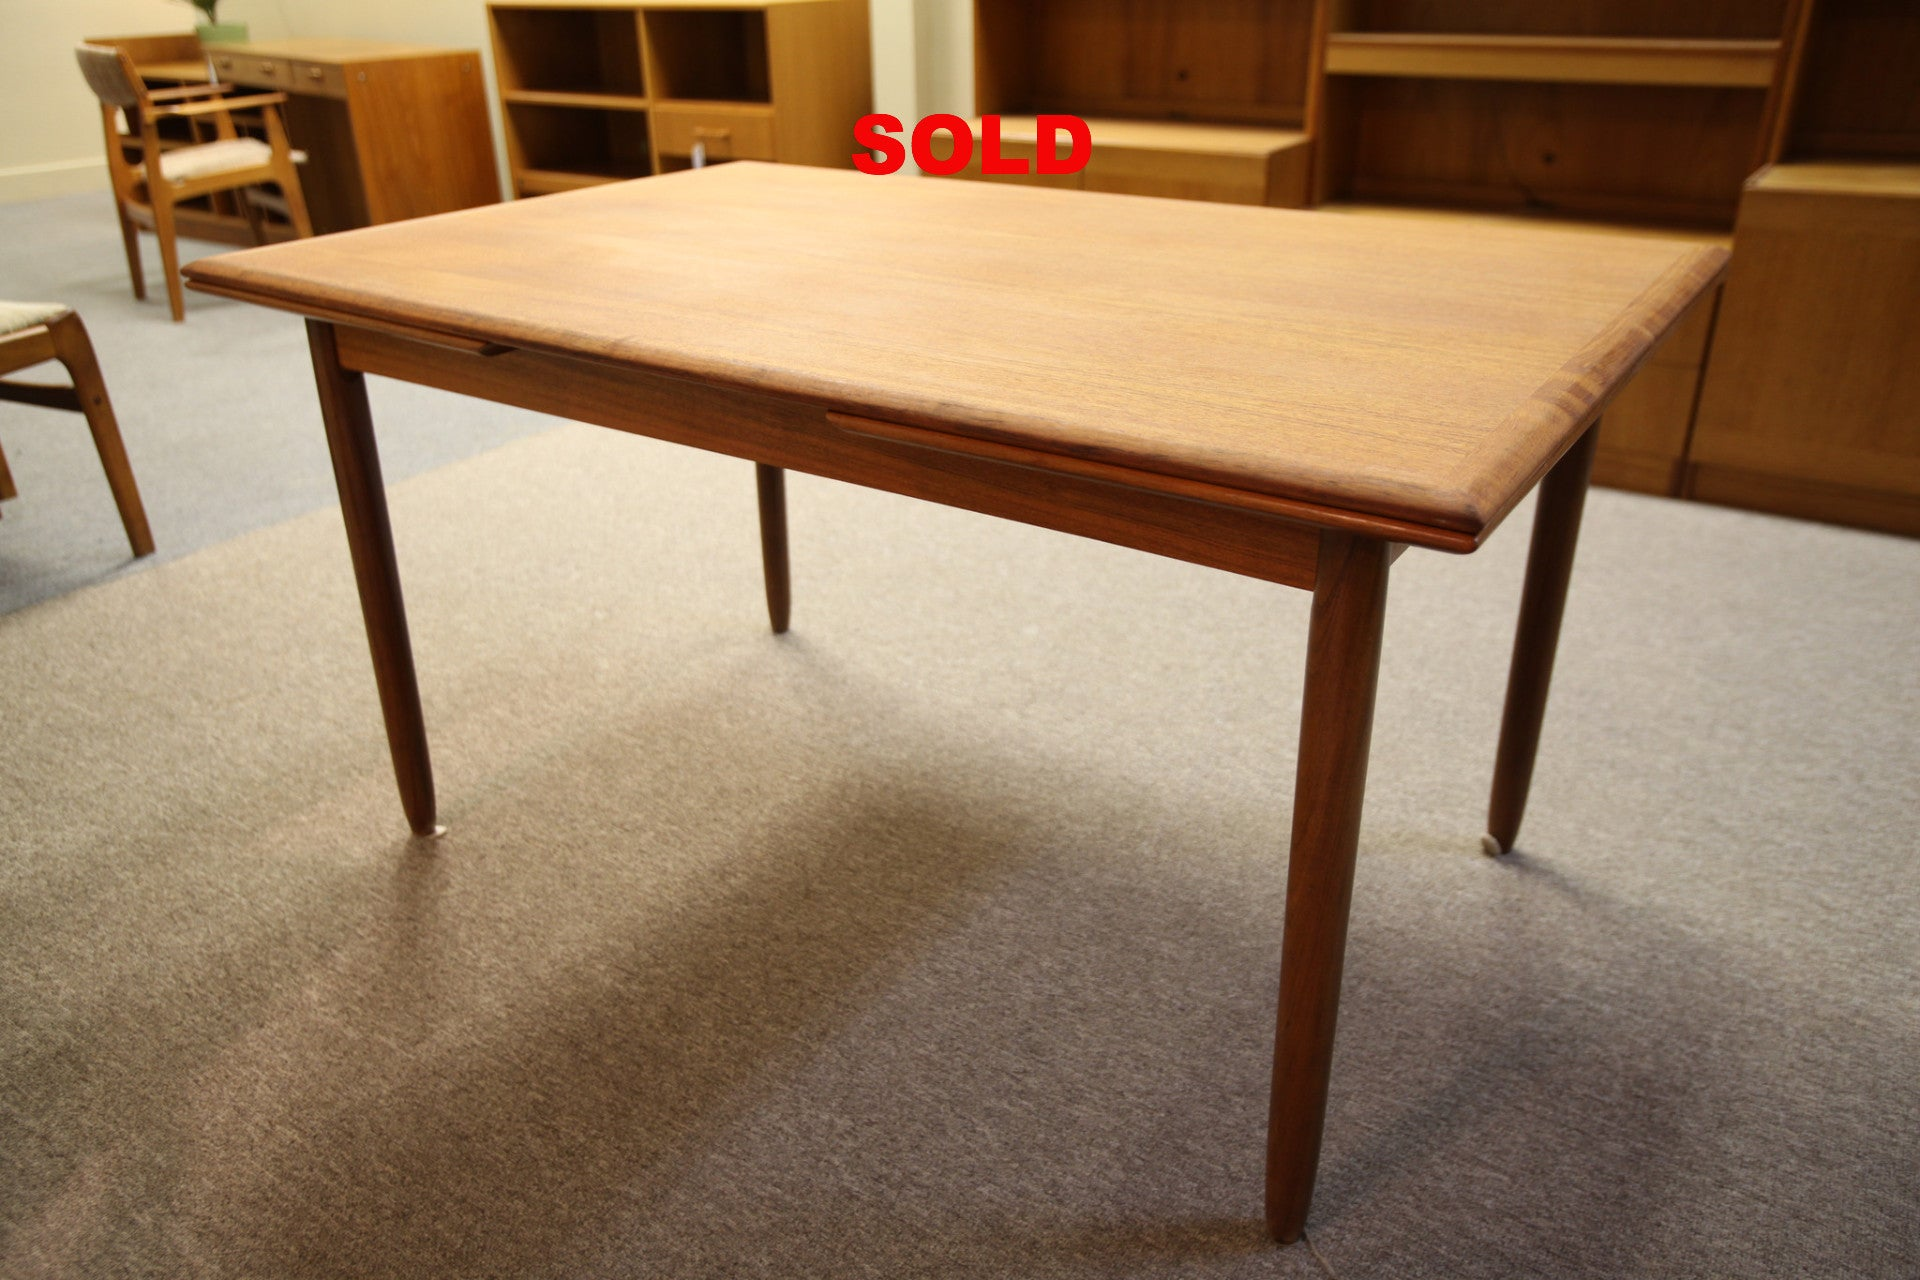 Large Teak Table with Extensions (90.25x35)